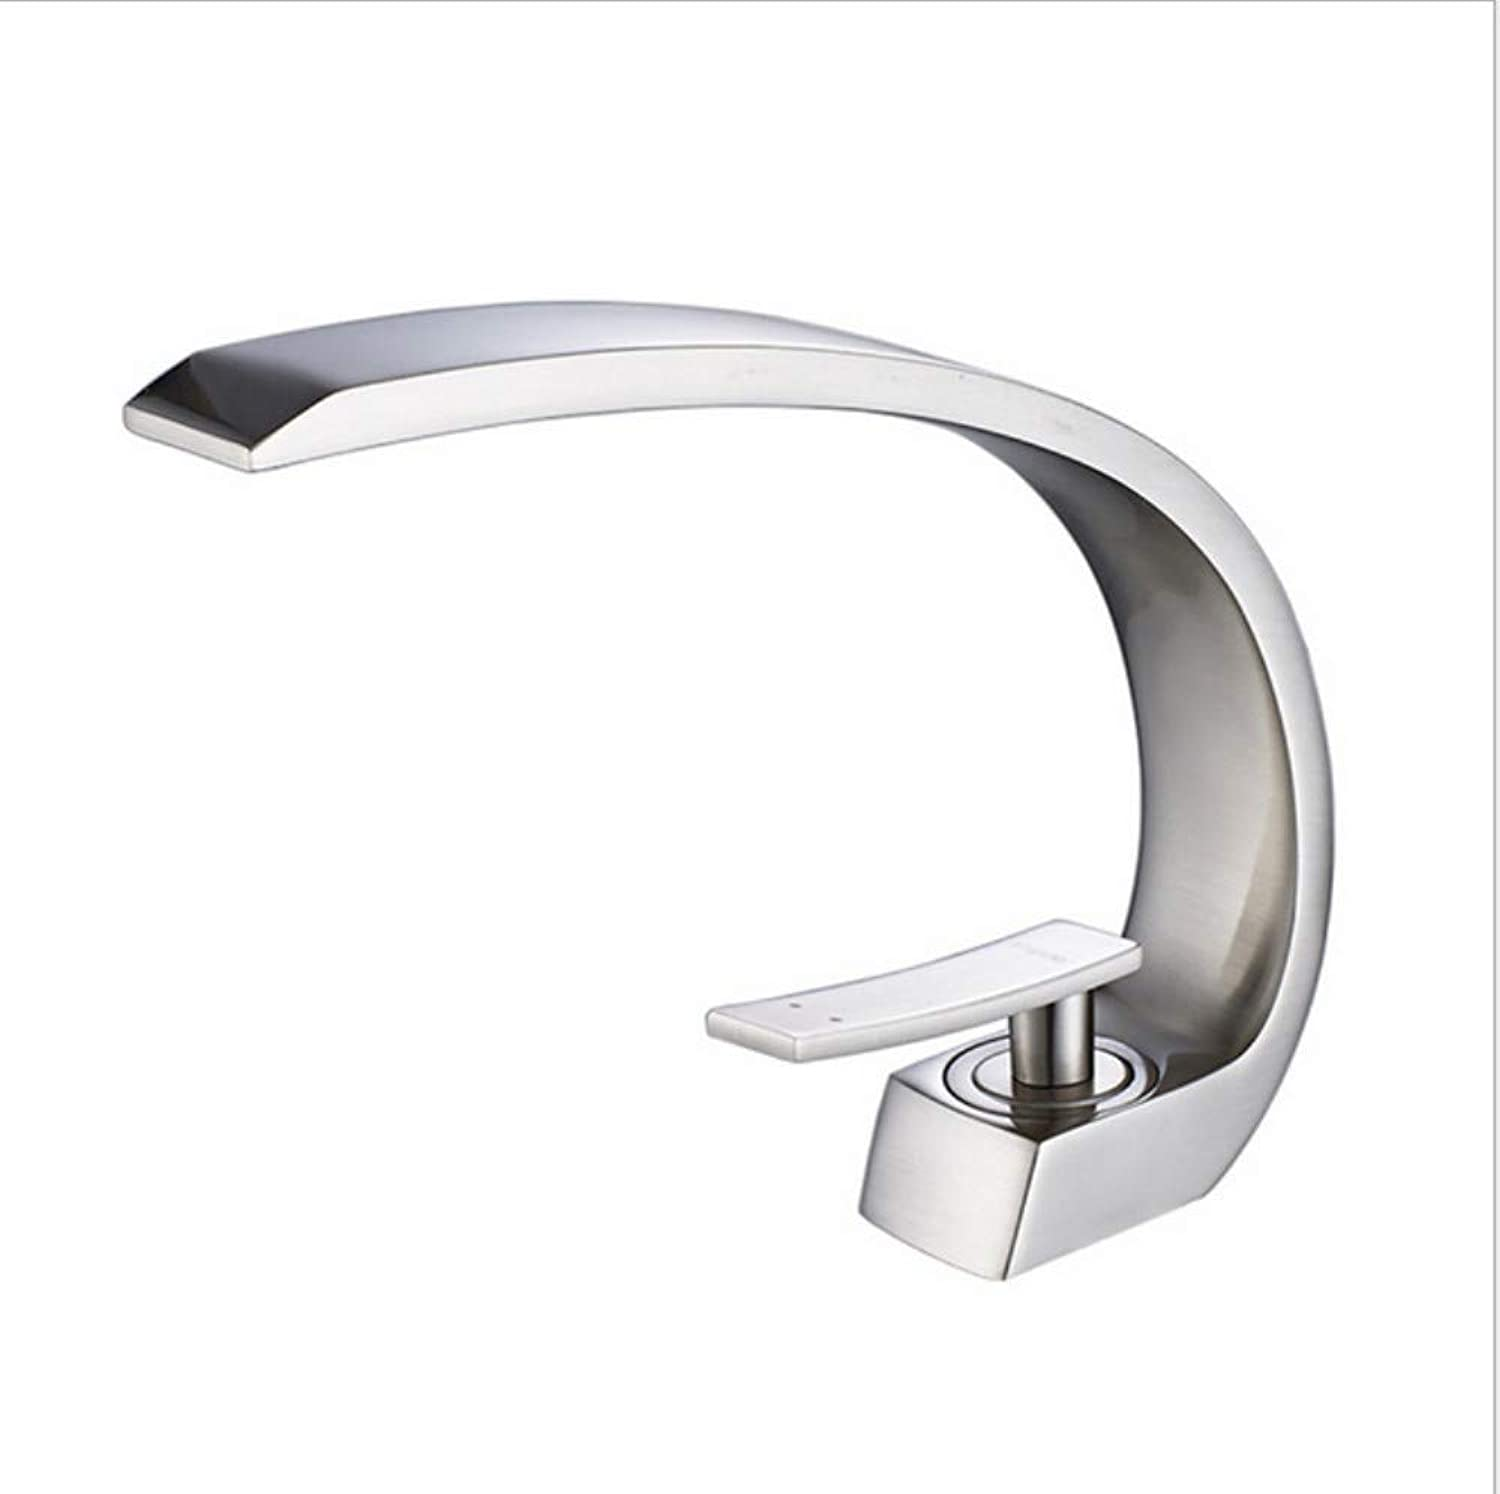 Xiujie Faucet Copper New Large Curved Nickel Brushed Bathroom Basin Faucet Hot and Cold Mixed Water Basin Basin Faucet